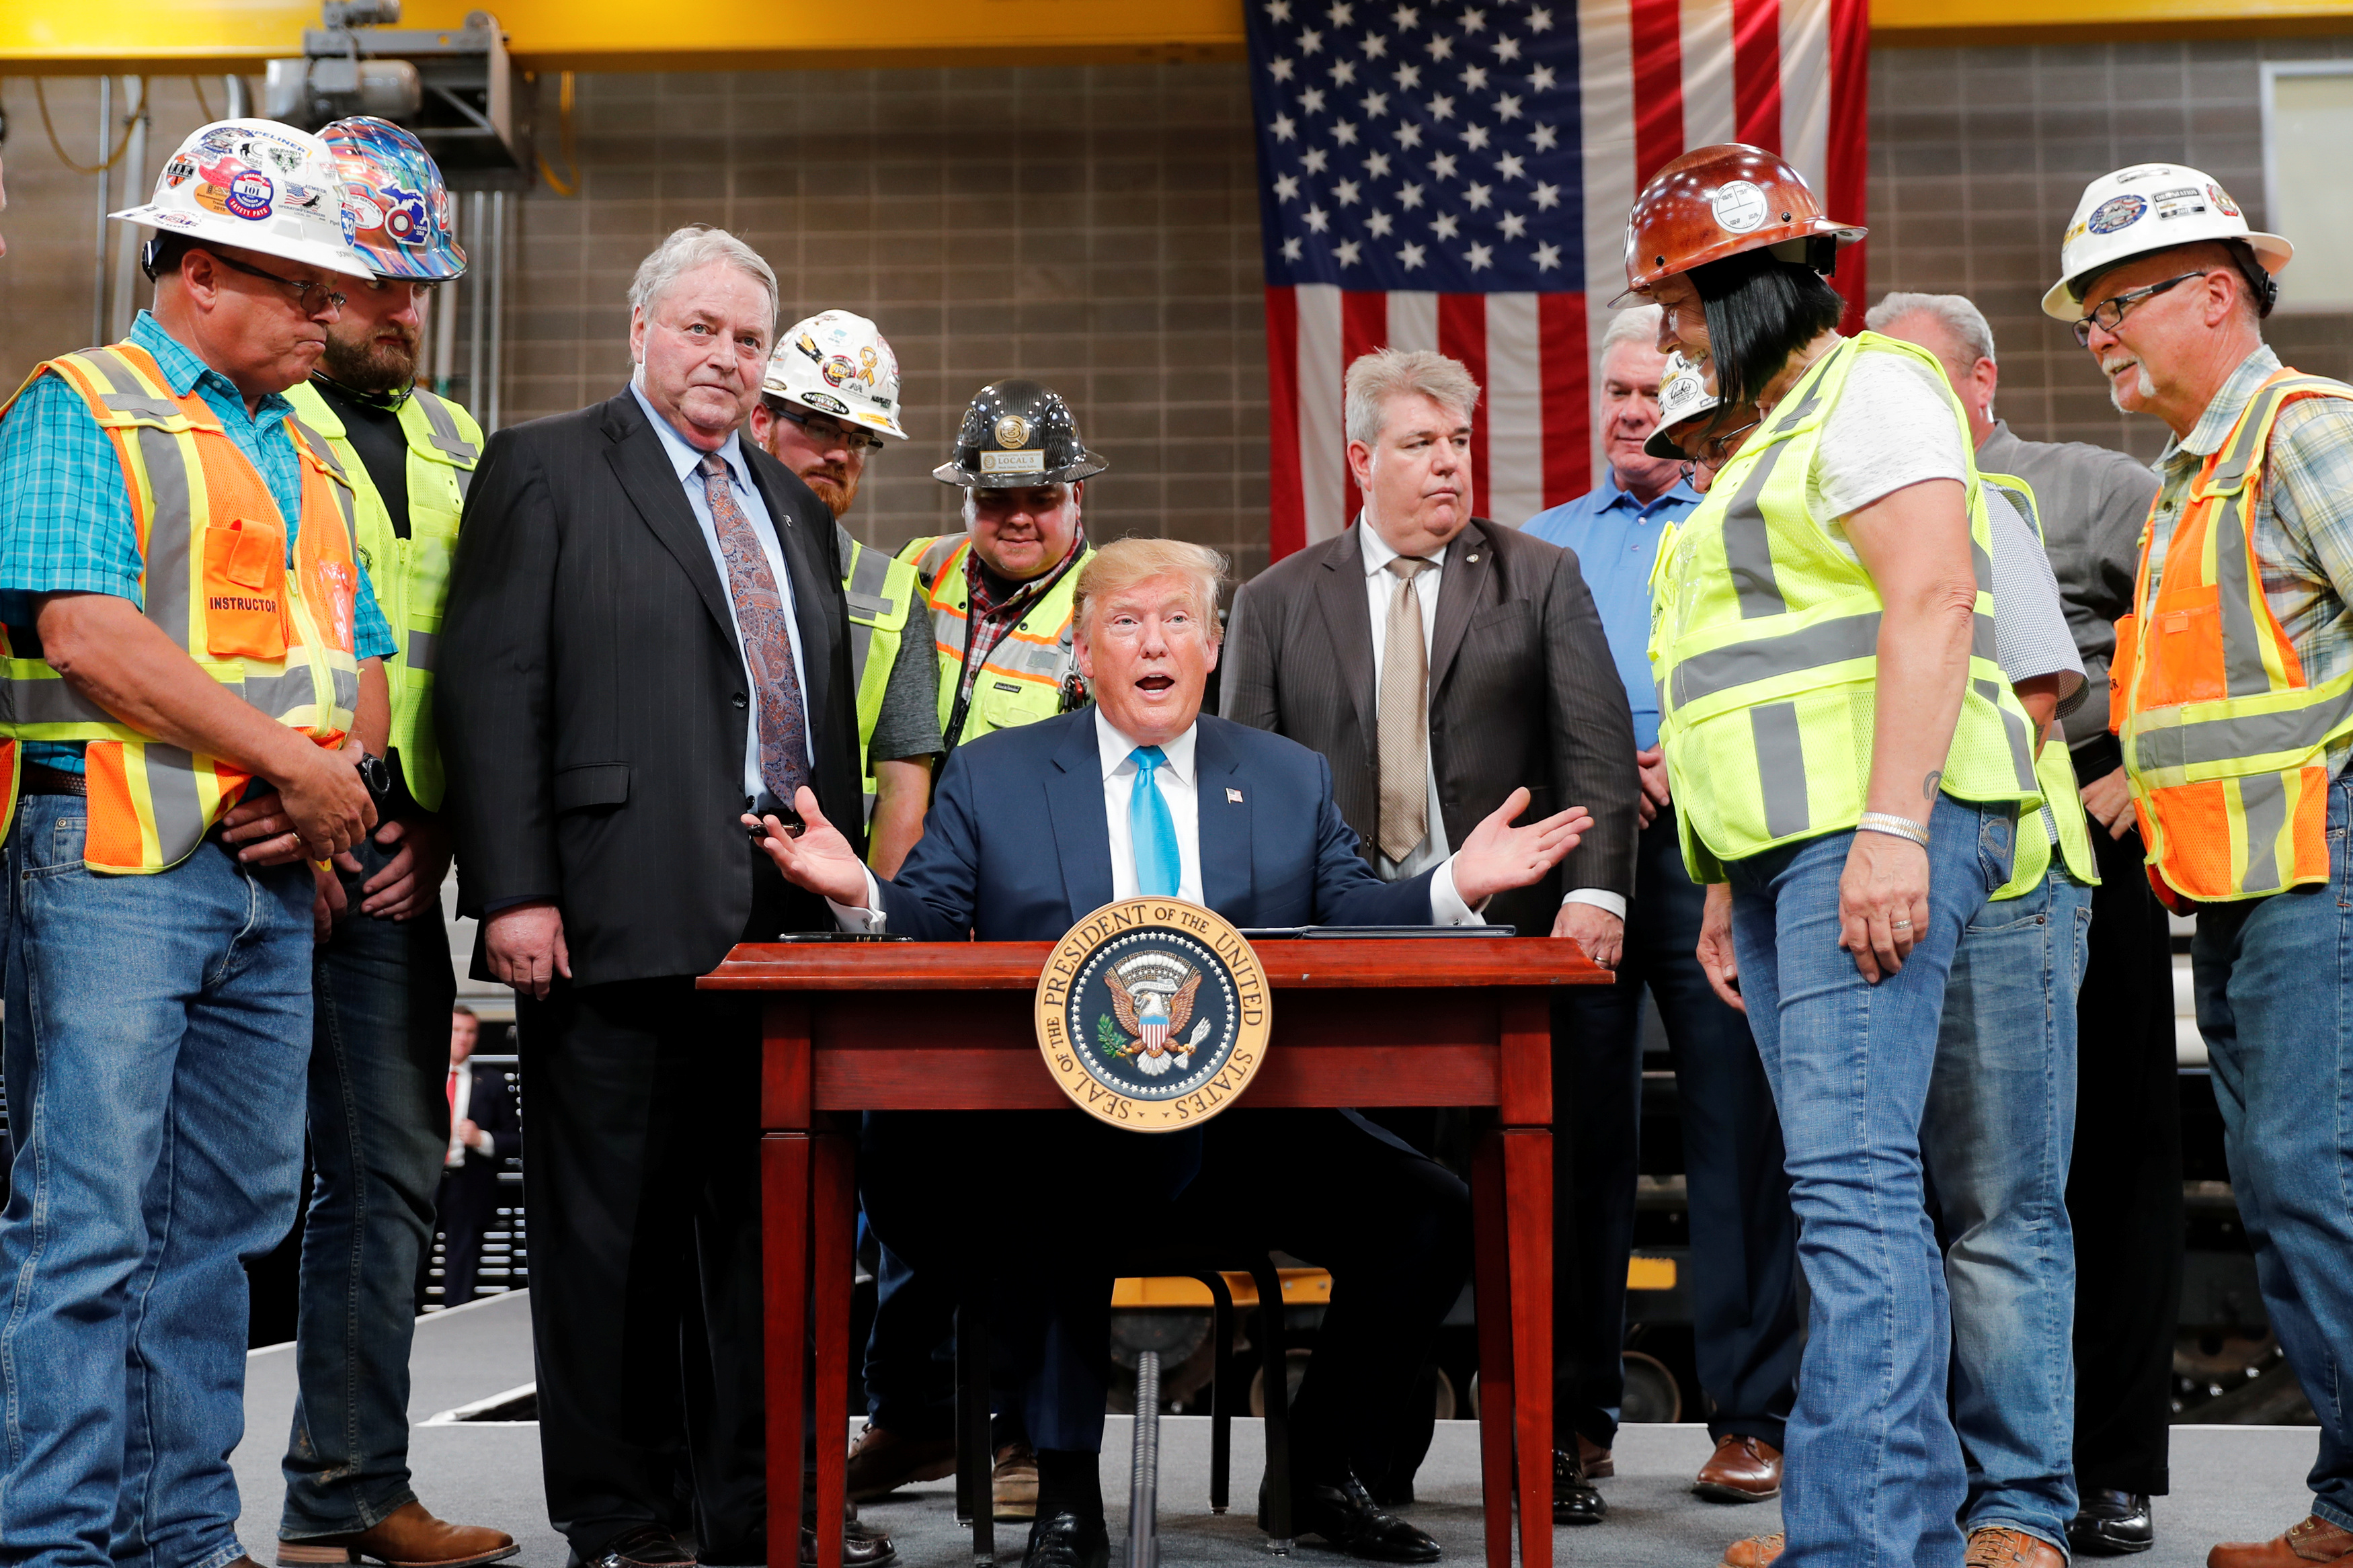 U.S. President Trump participates in energy and infrastructure executive order signing event in Crosby, Texas